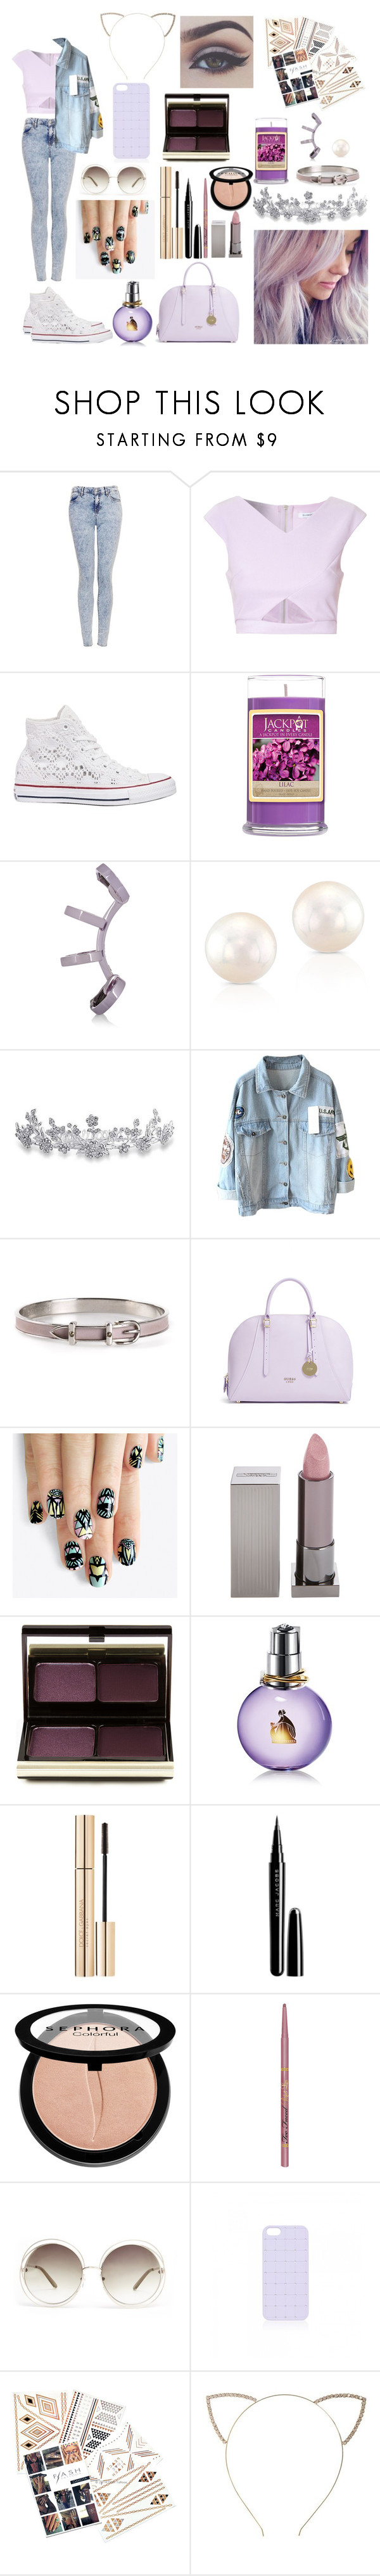 """Spring Dream"" by stellaglaze ❤ liked on Polyvore featuring Topshop, Glamorous, Converse, Repossi, Bling Jewelry, Hermès, GUESS, alfa.K, Lipstick Queen and Kevyn Aucoin"